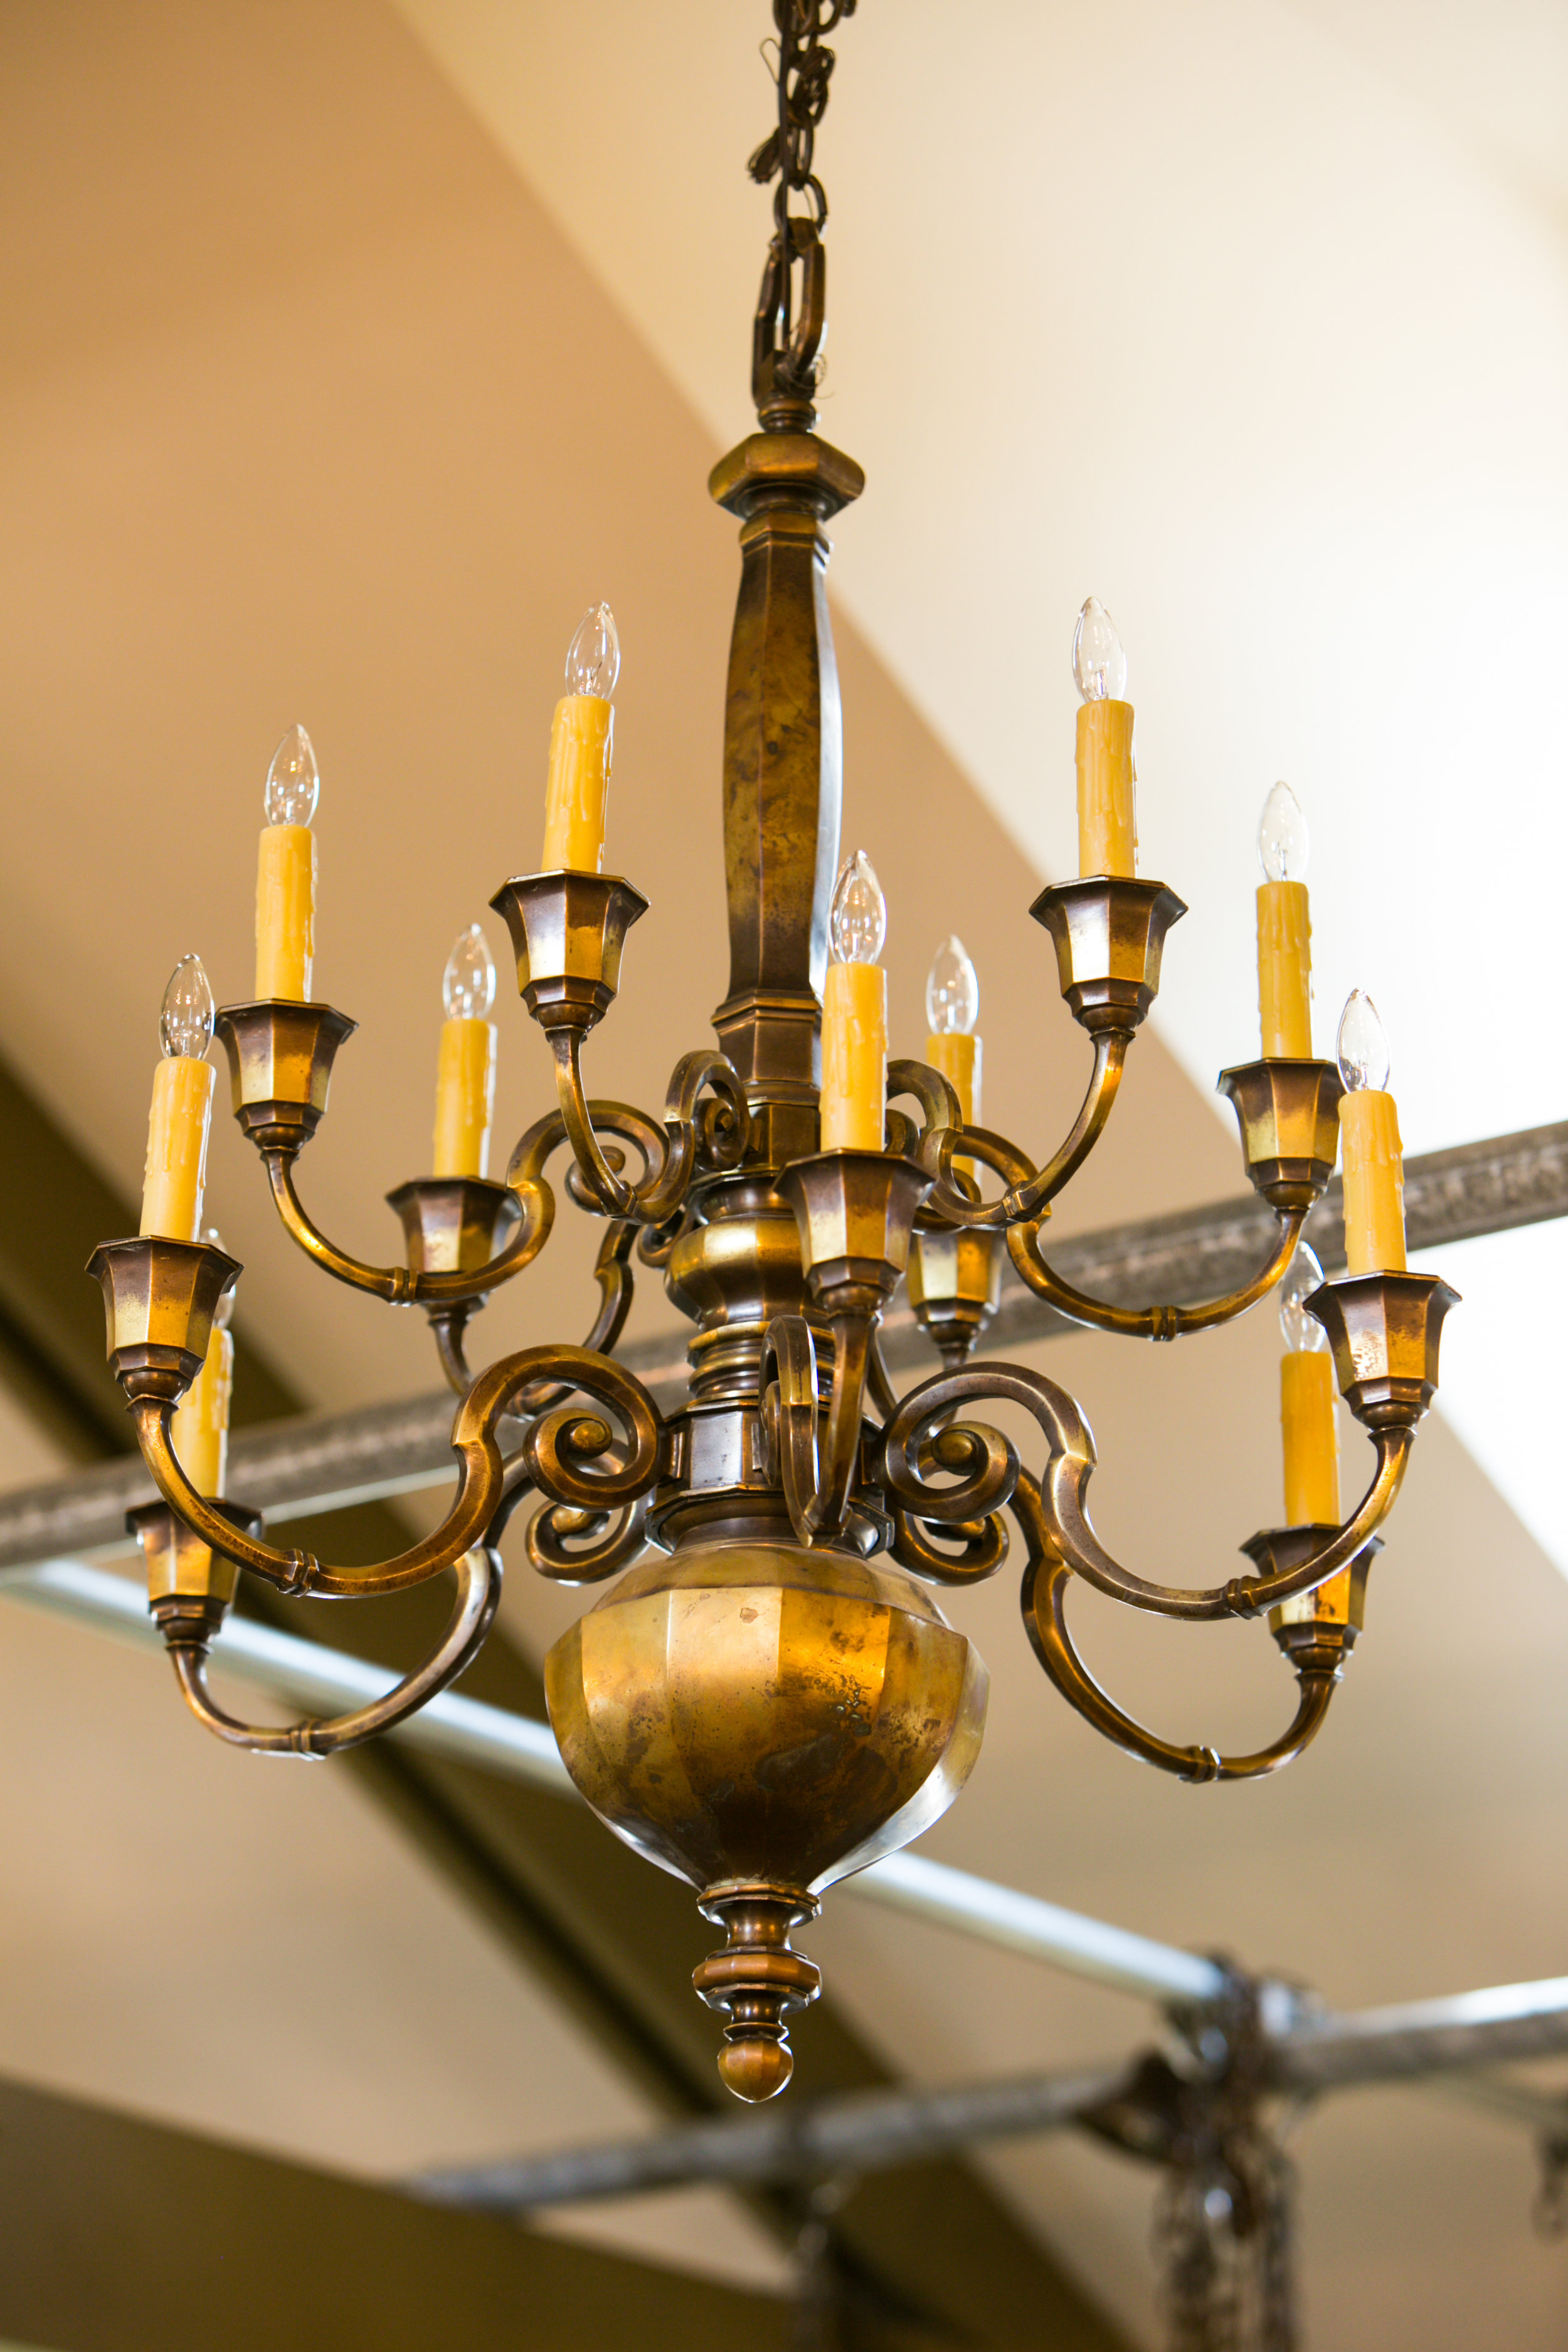 English Heavy Bronze Two-Tier Chandelier with 12 Arms, Circa 1900